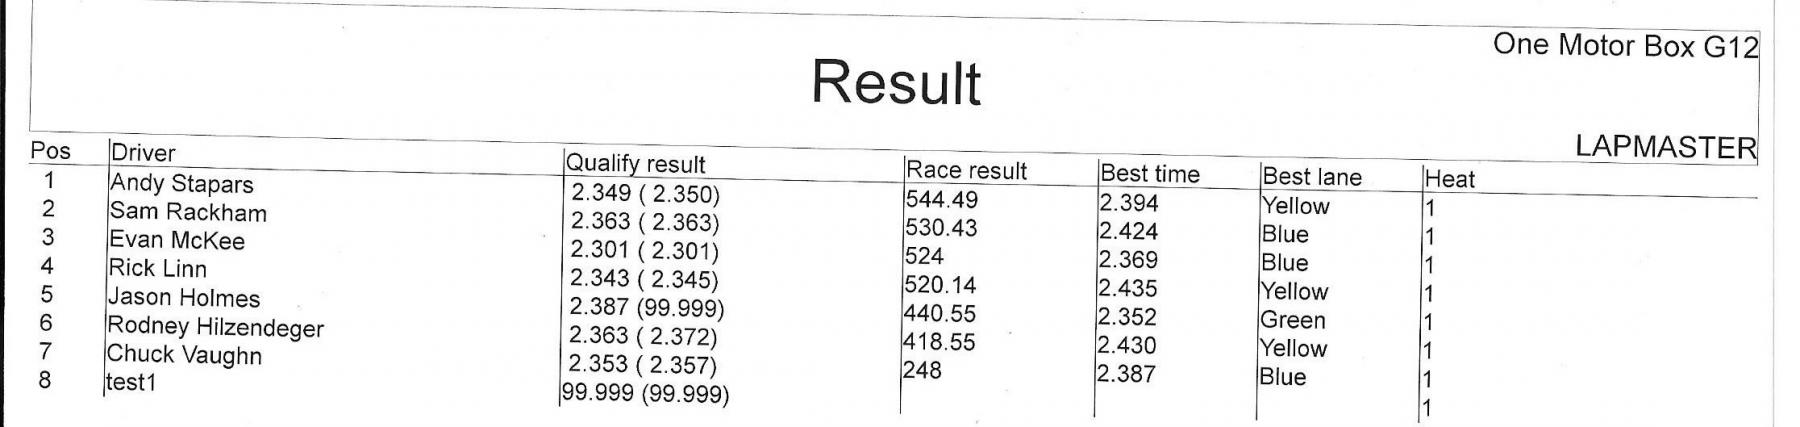 142020 omb results.jpeg